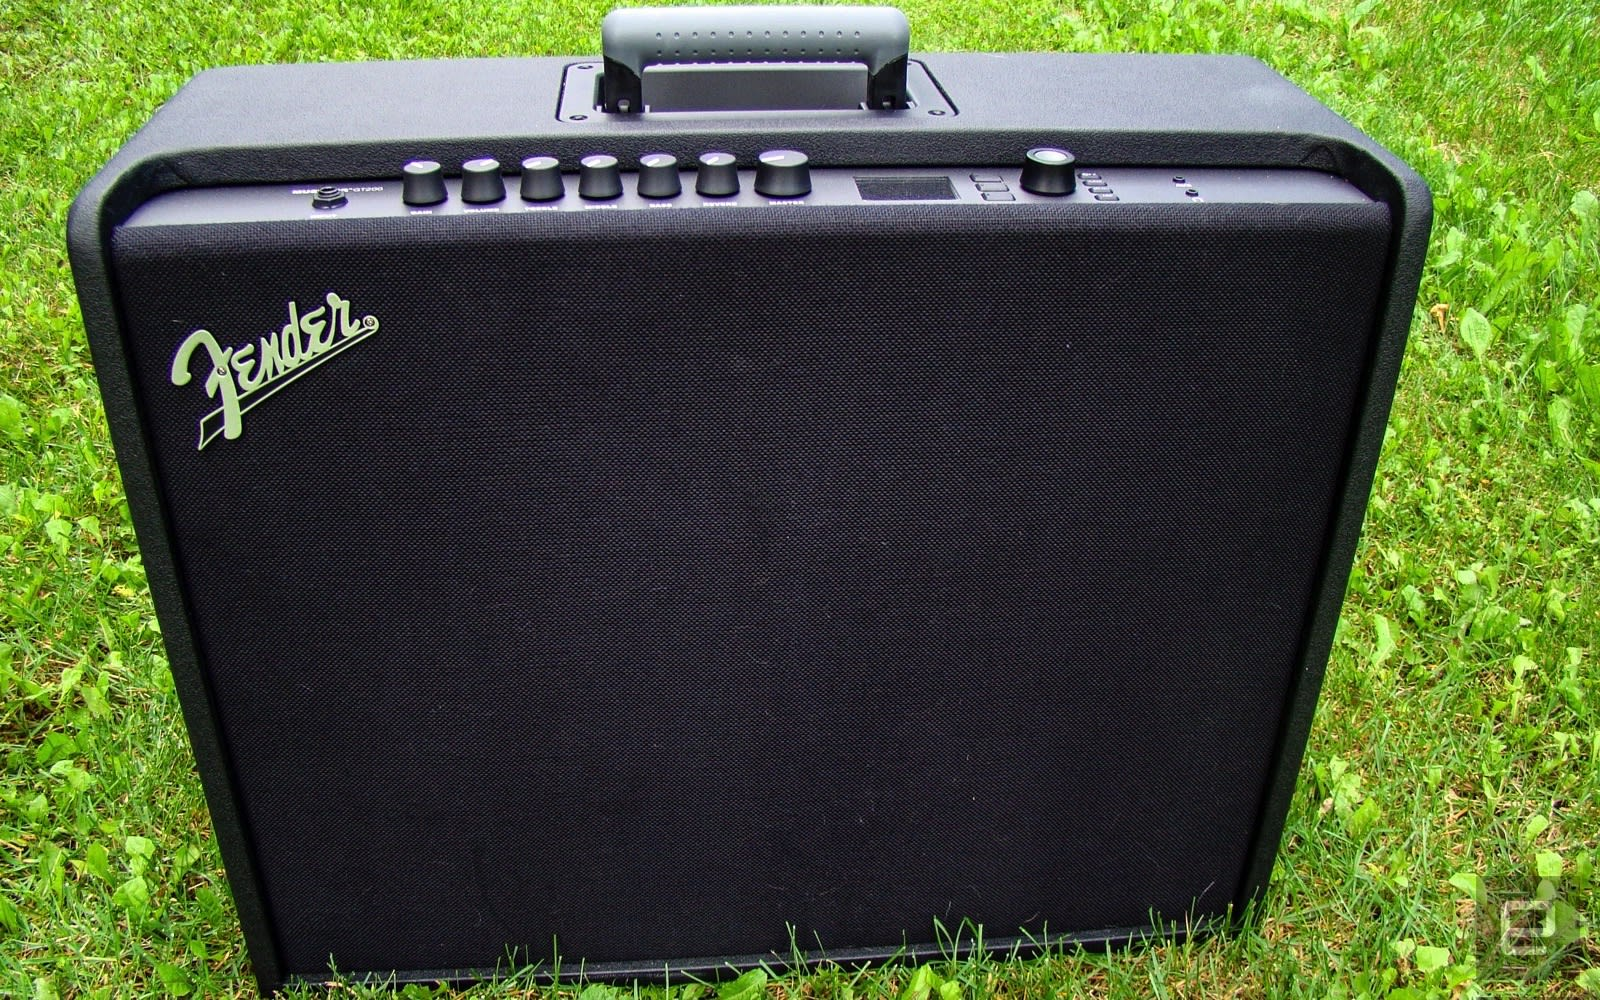 Fender's Mustang GT amps pack an overkill of digital options